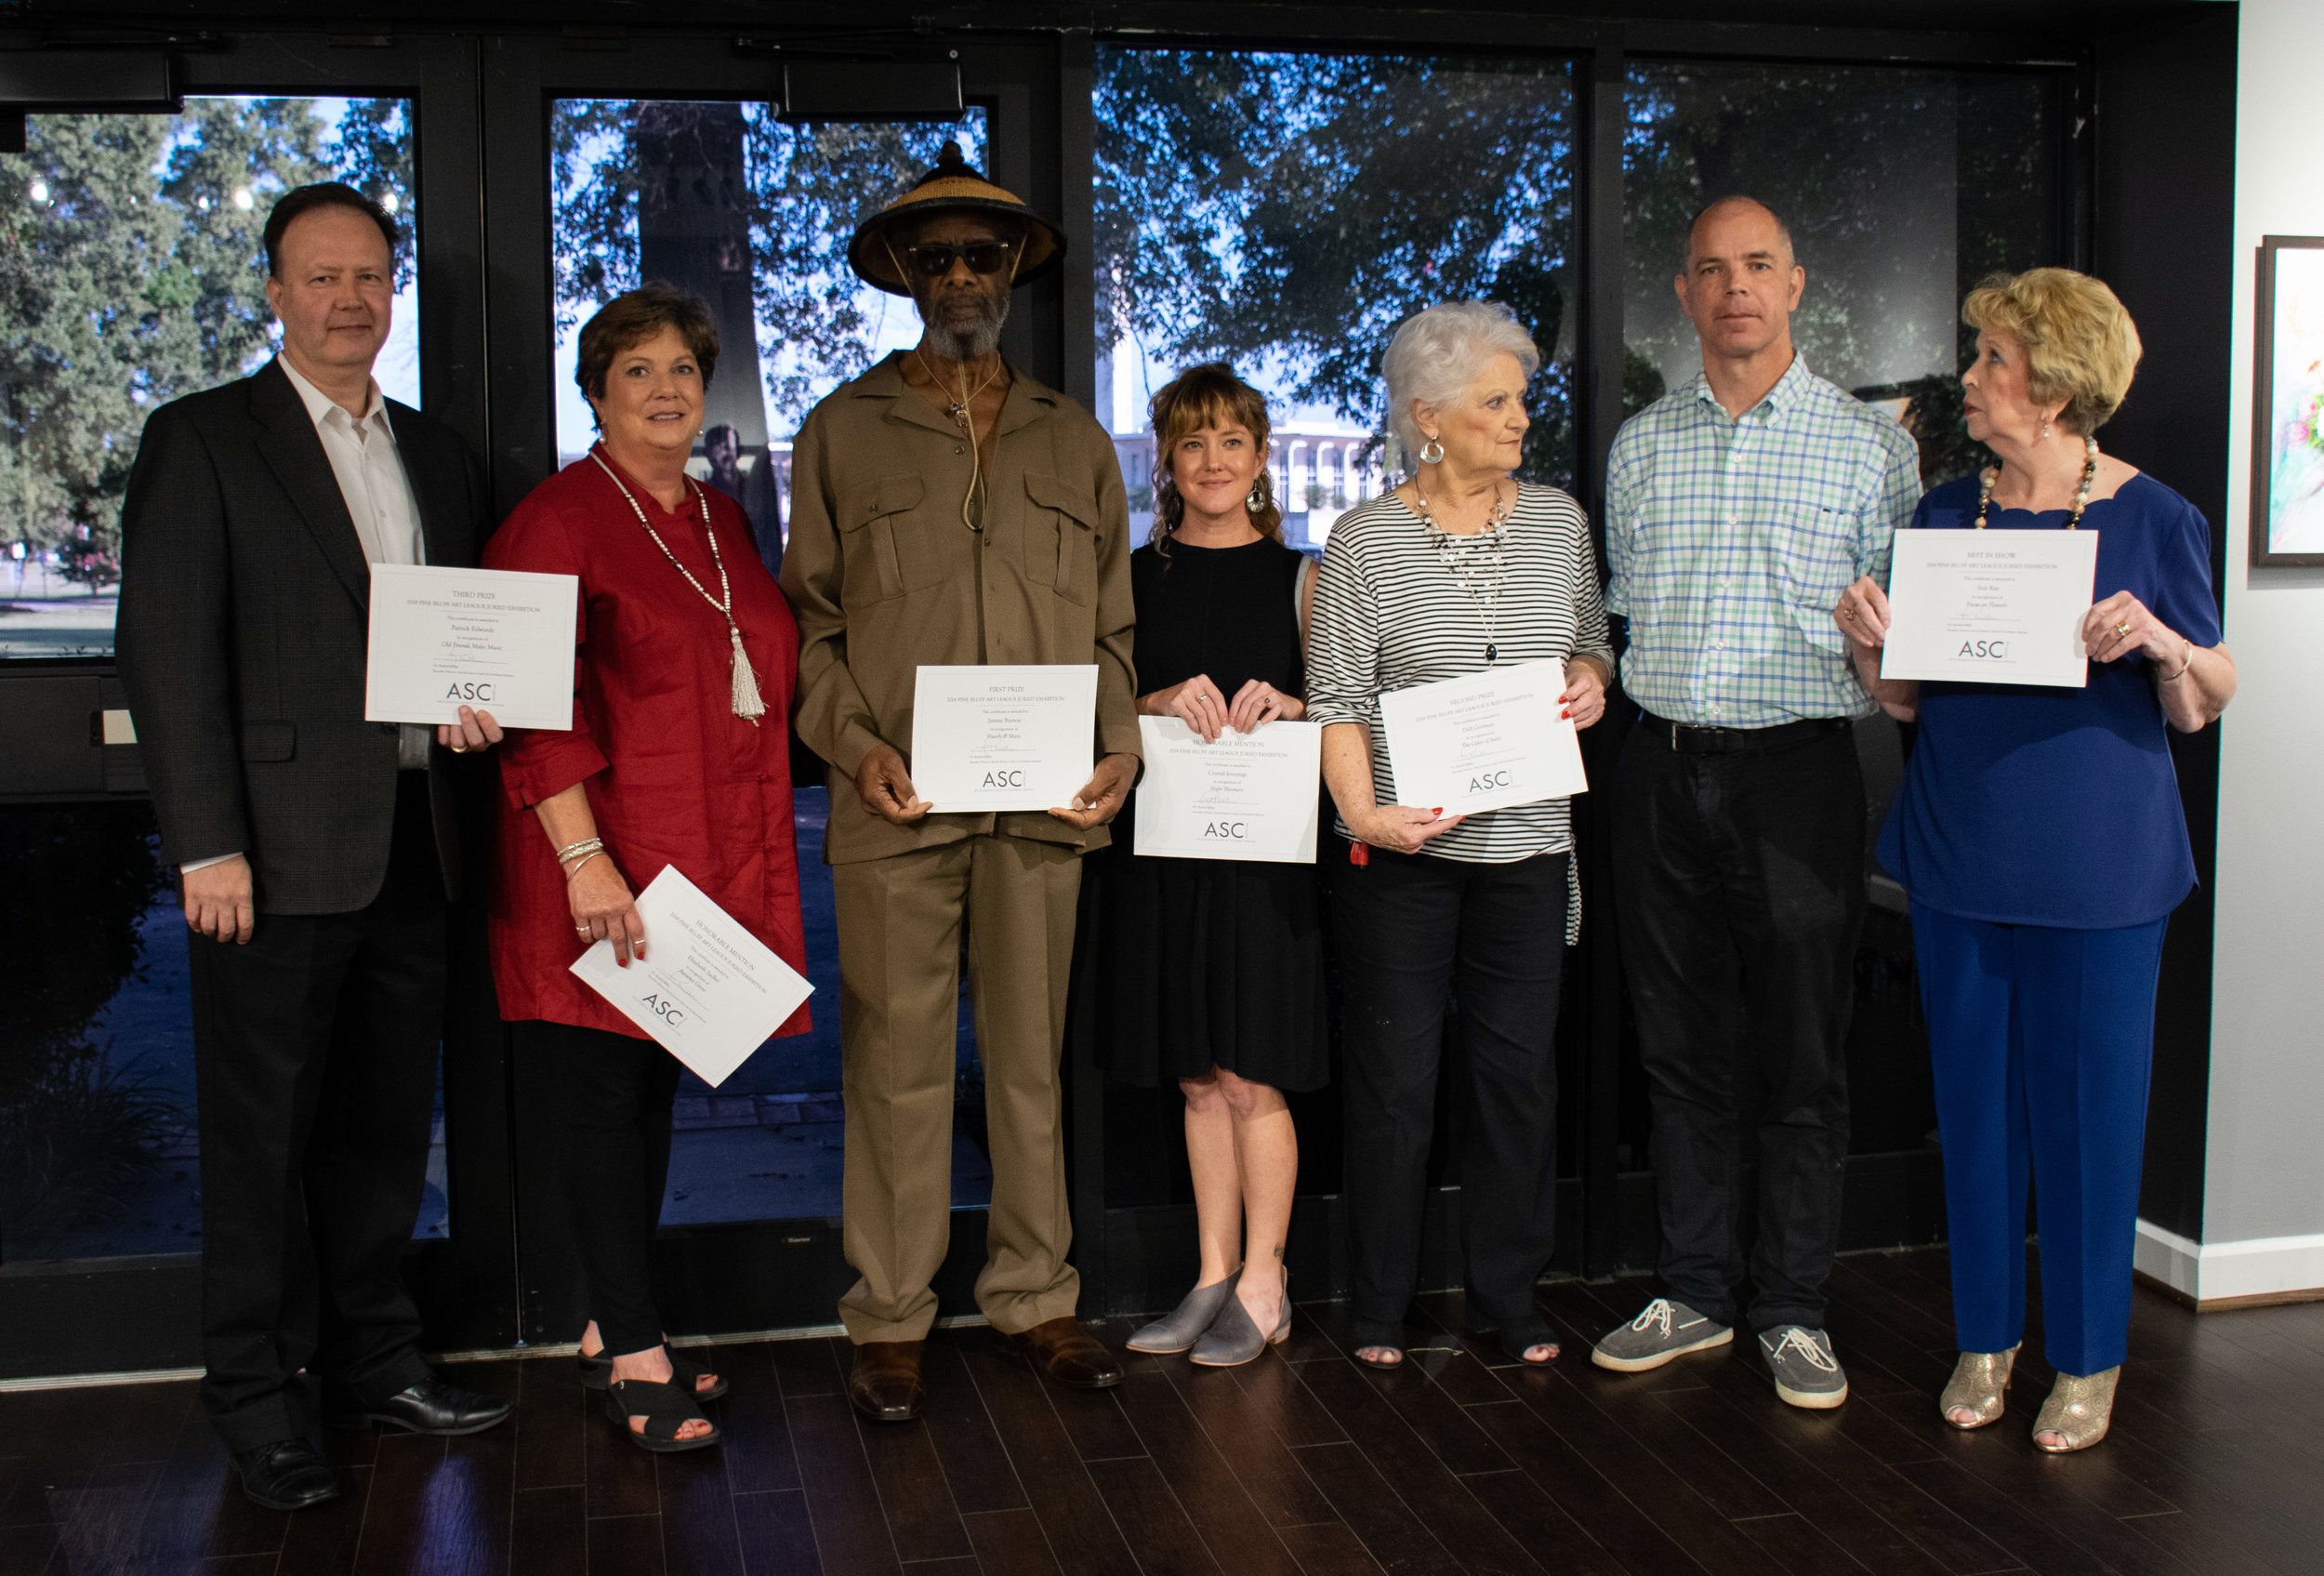 The winners of the 2018 Pine Bluff Art League Annual Exhibition are (from left) Patrick Edwards (Third Place), Elizabeth Sadler (Honorable Mention), Jimmie L. Burton (First Place), Crystal Jennings (Honorable Mention), Dell Gorman (Second Place), Juror John Kushmaul, and Inis Ray (Best in Show).